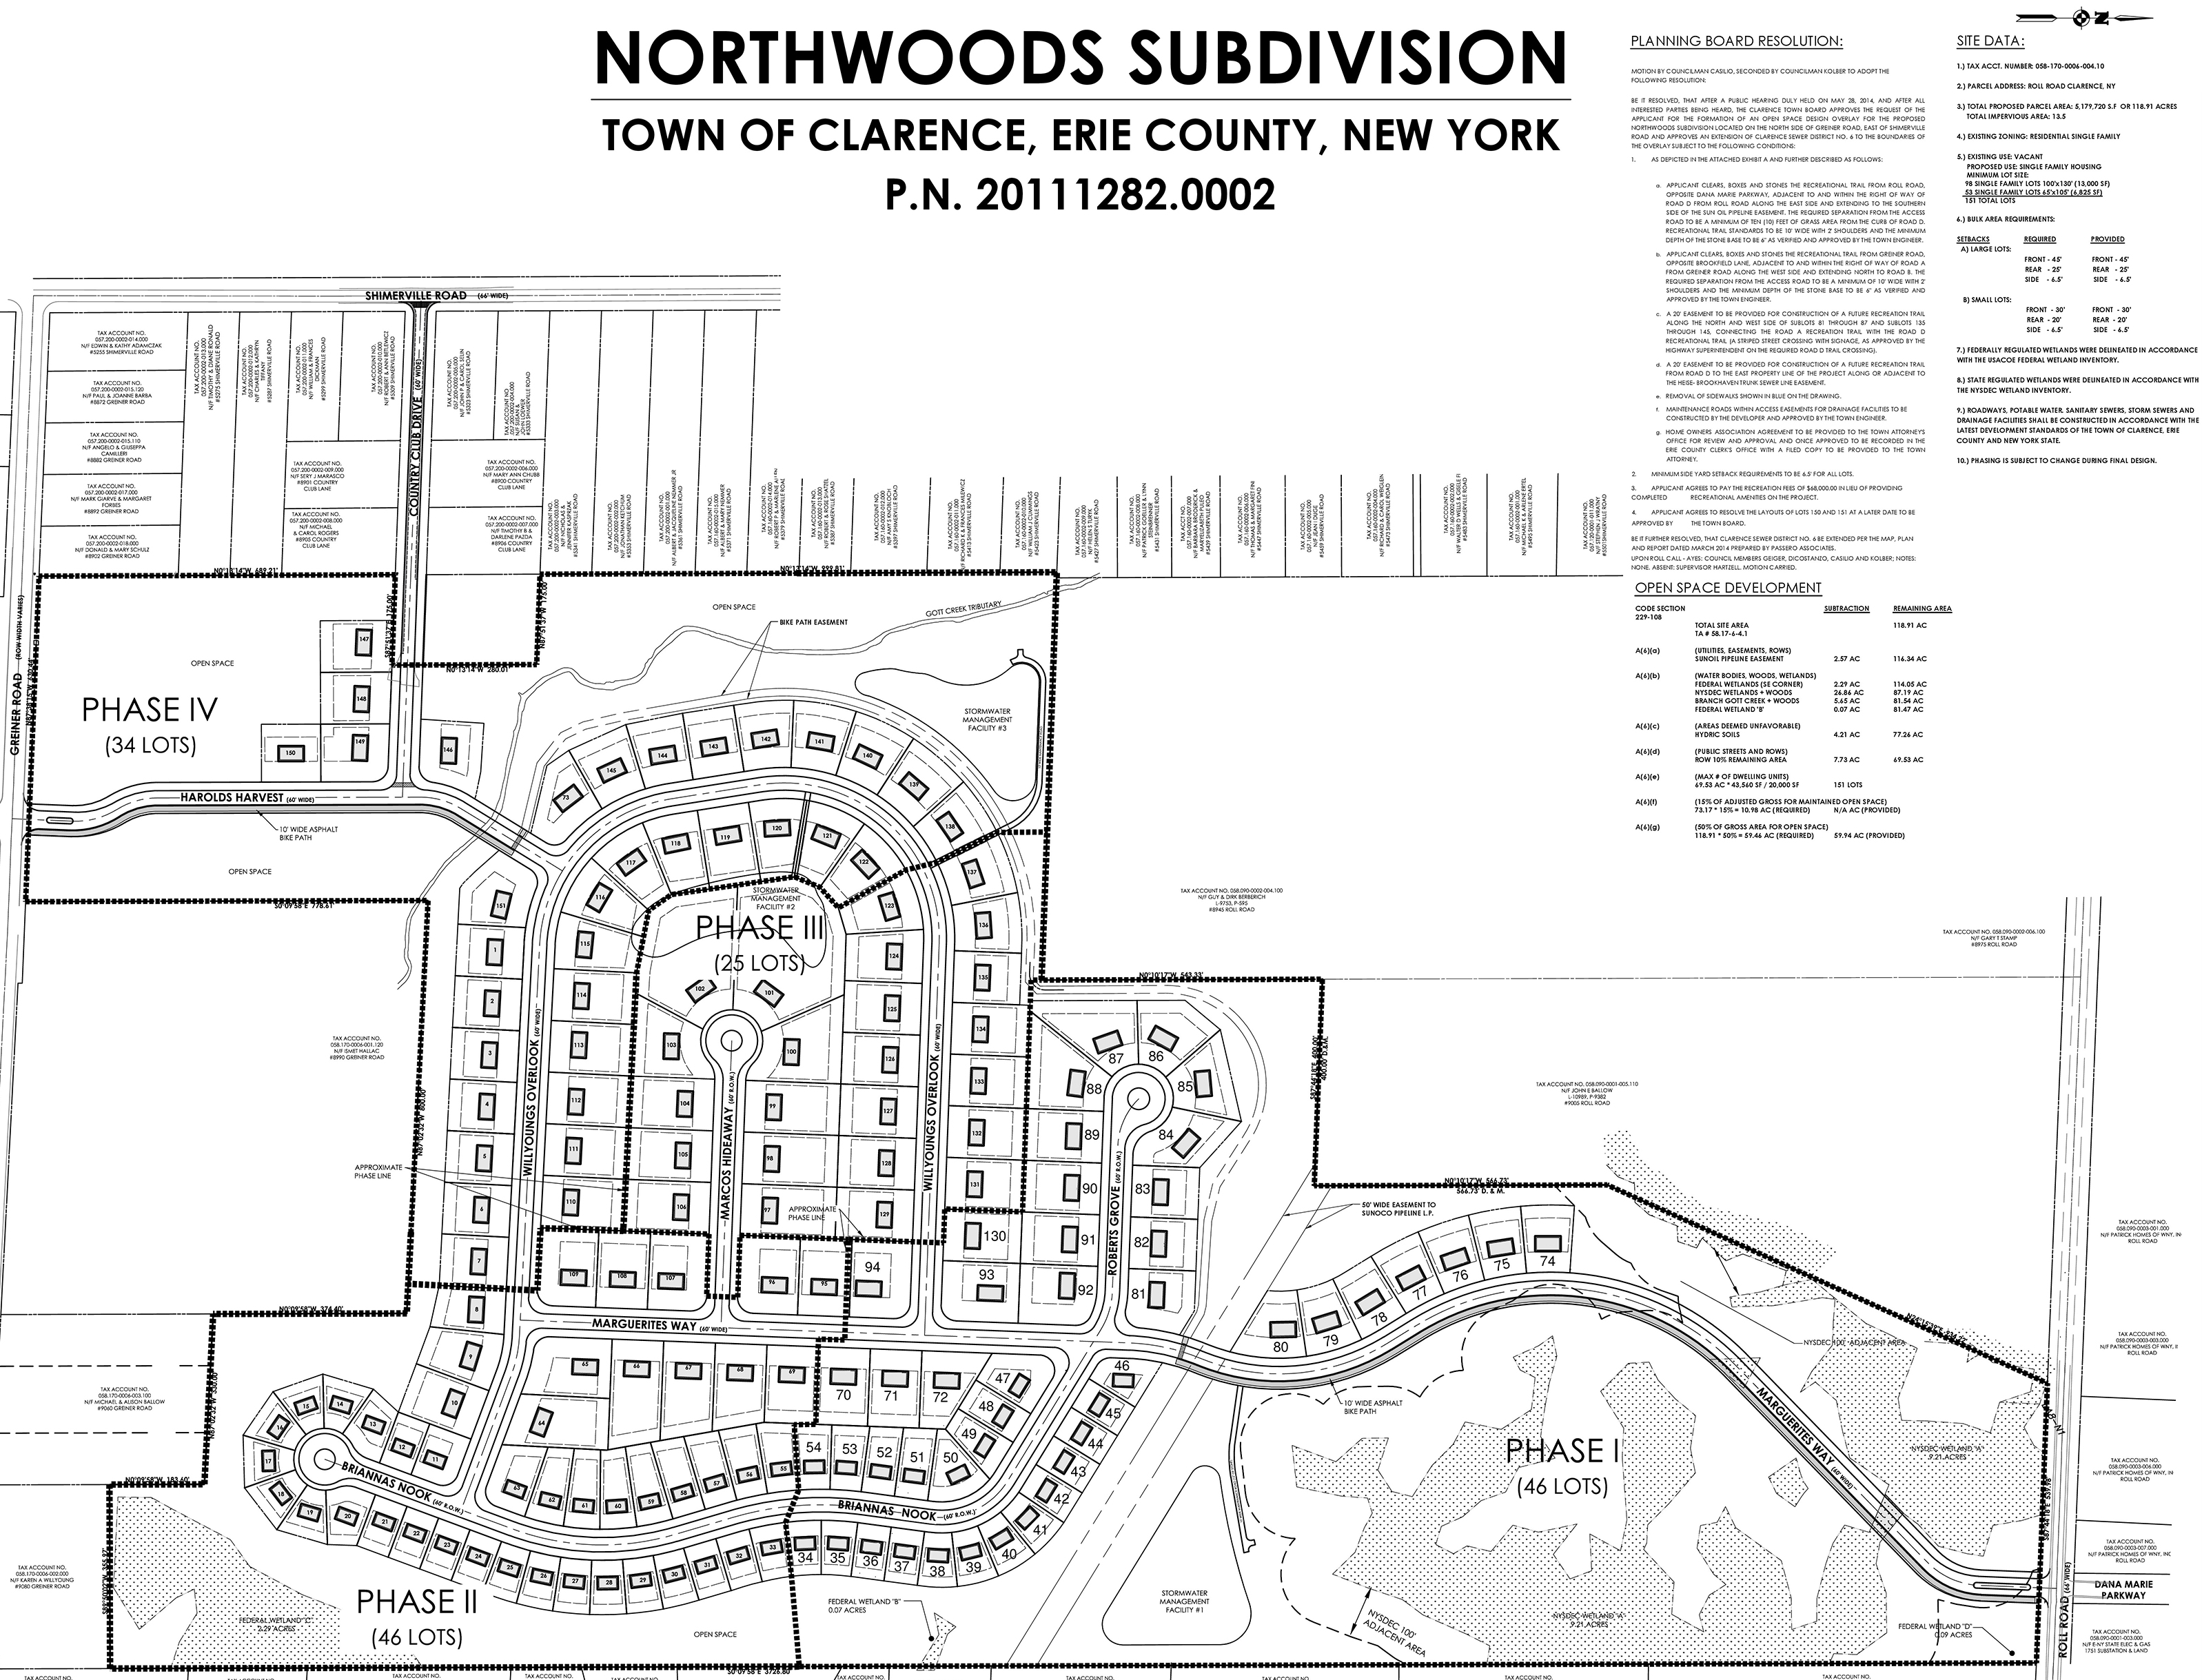 Northwoods subdivision map